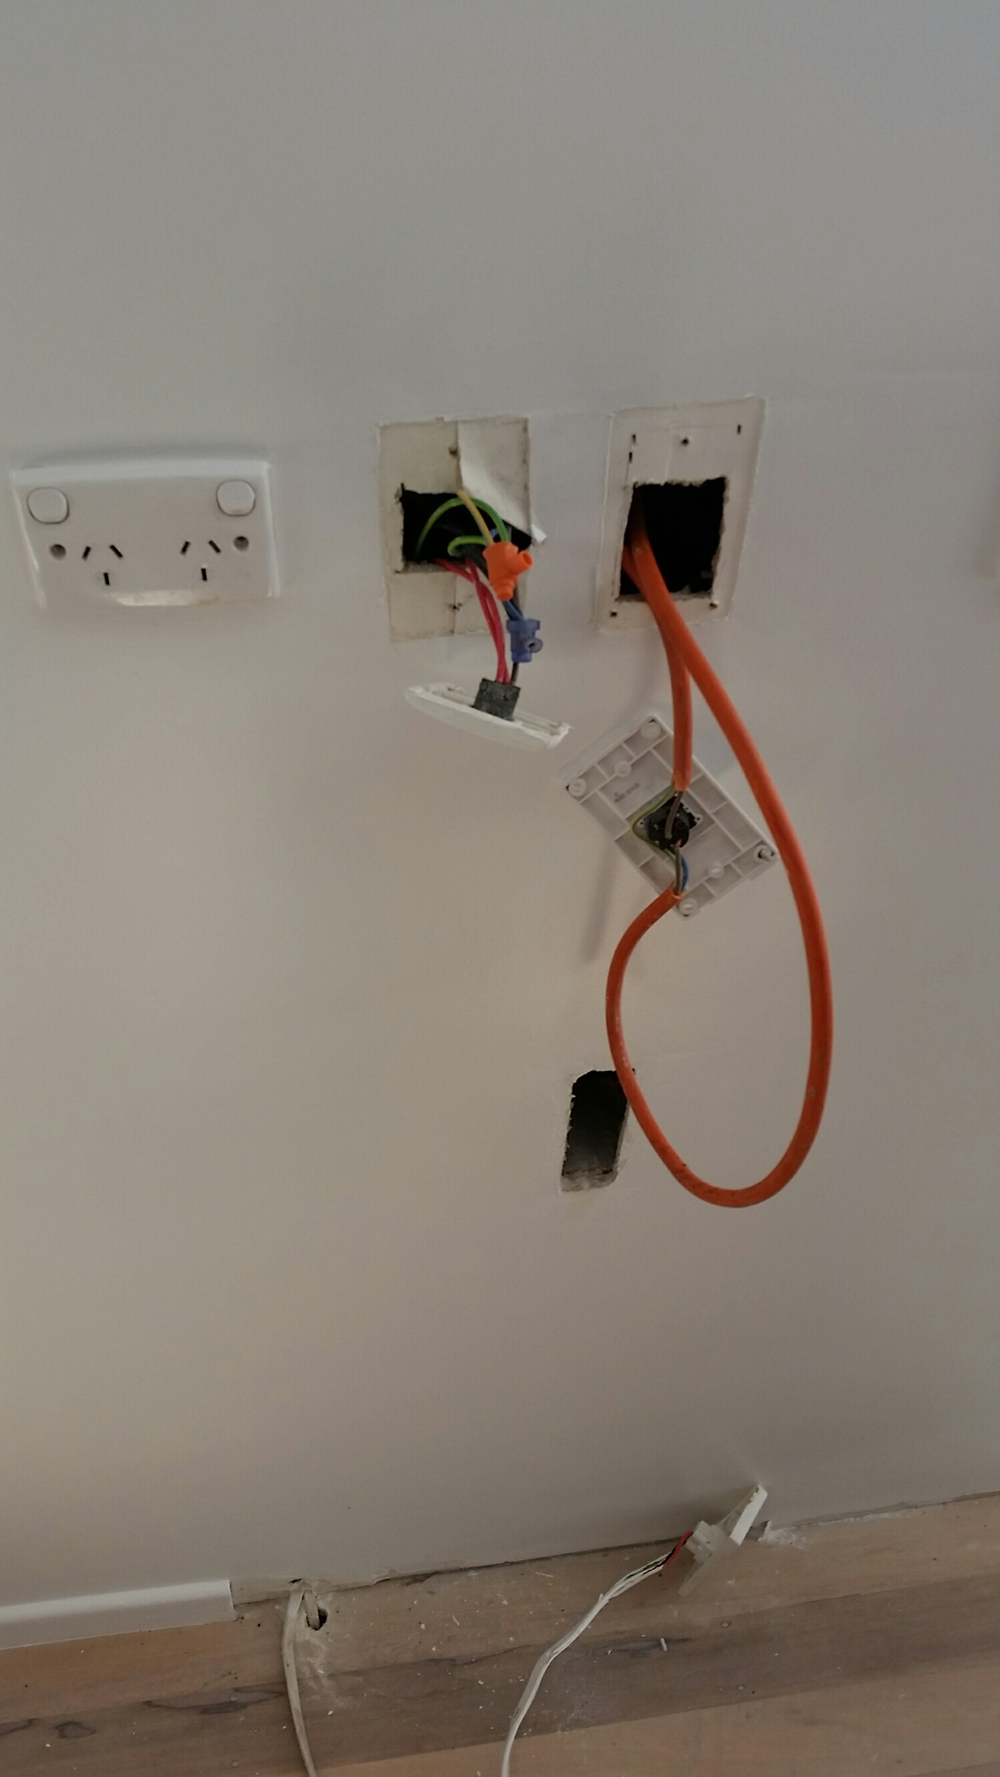 Daily Happenings Southpaw Electrical Ltd Scary Wiring We Found This In A Wall Today Dont Let Happen To You Make Sure Any Works Are Certified And Signed Off On Completion Its Find